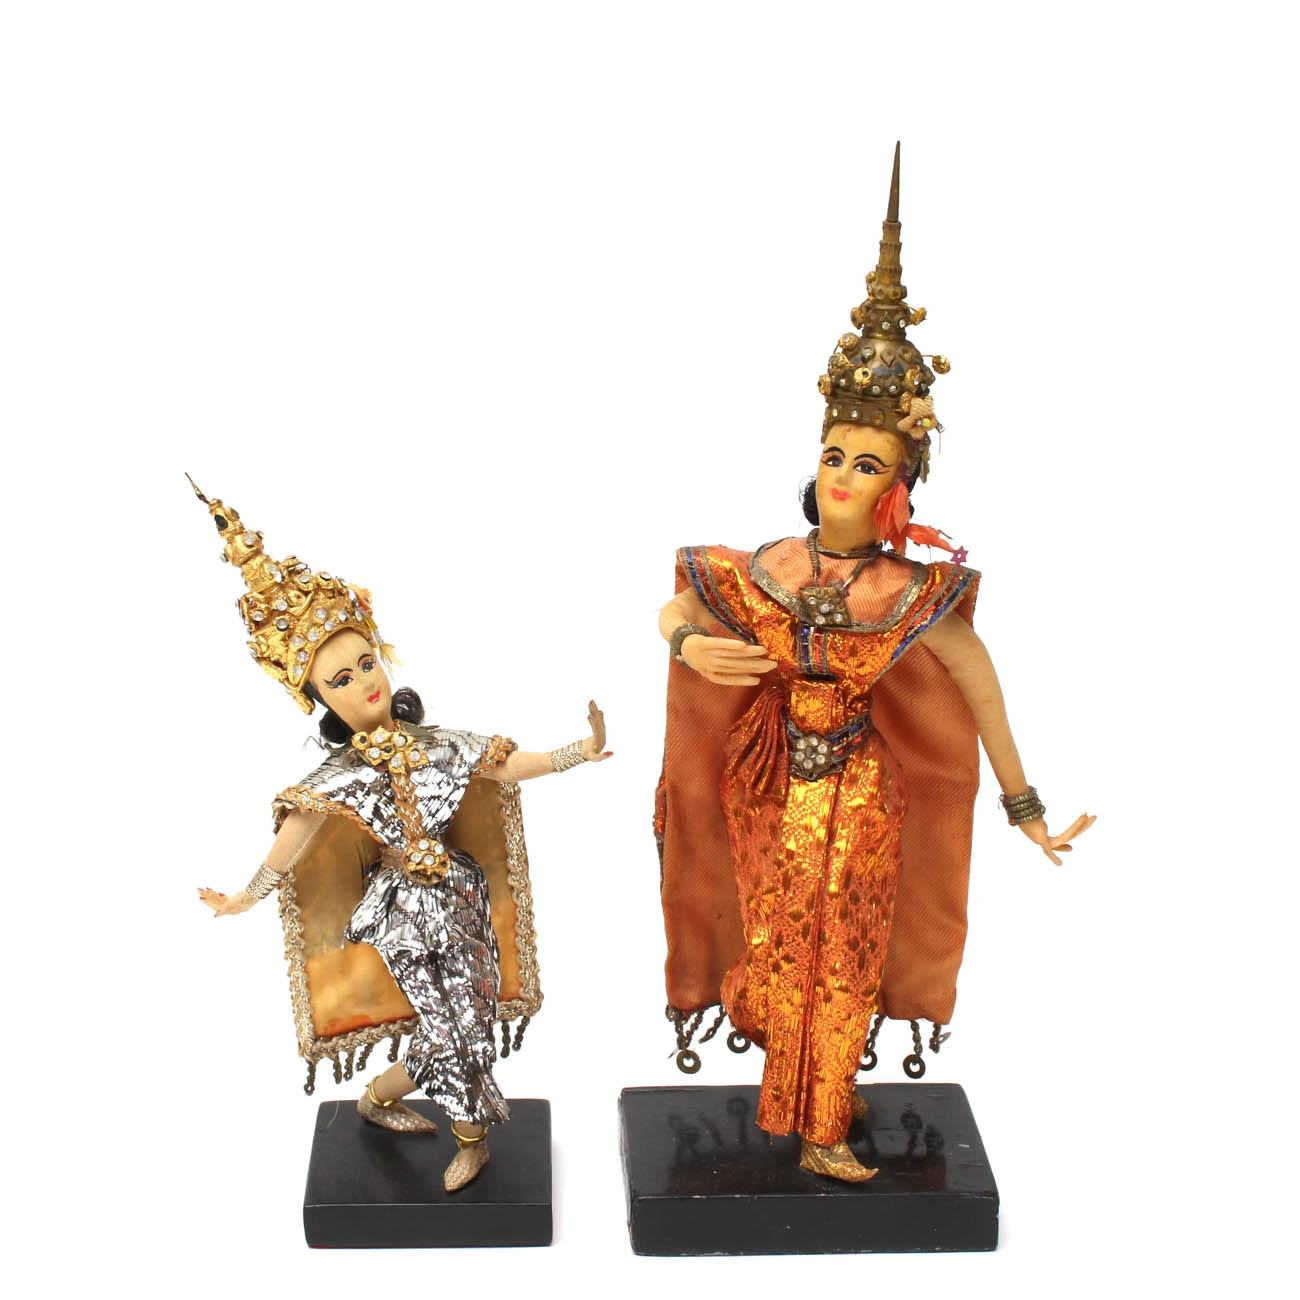 Thai Dancer Figurines